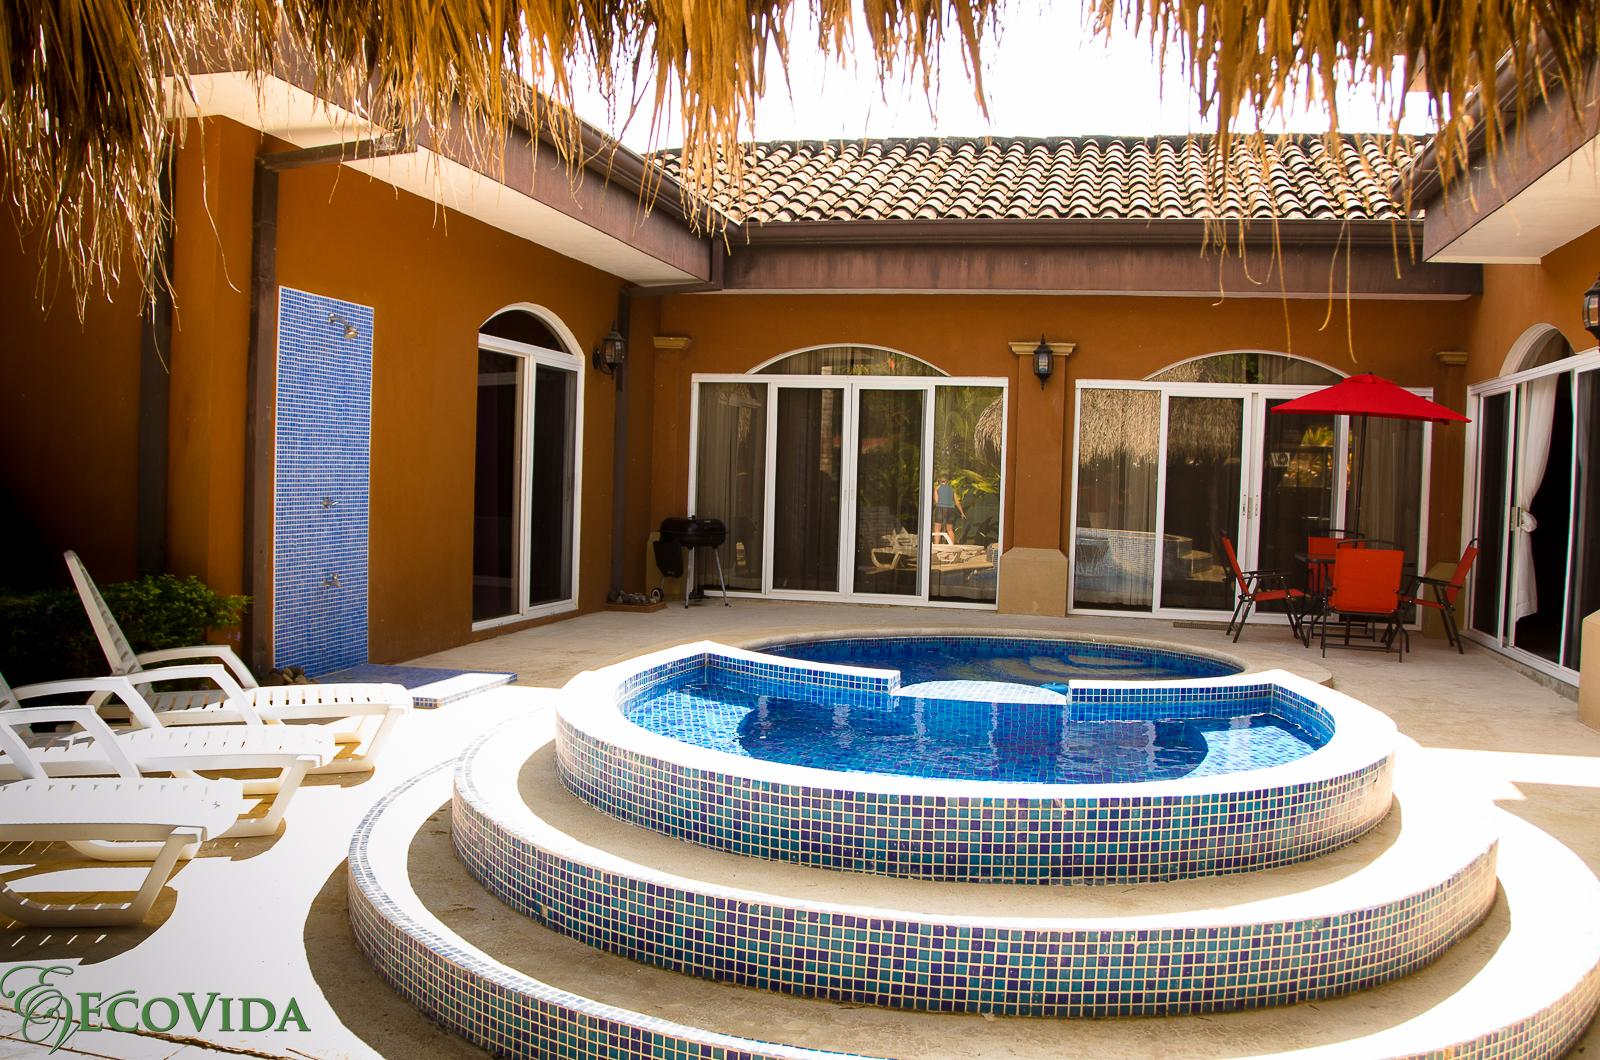 Cash Pooling Y Precios De Transferencia Ecovida Casa De Los Sueños With Private Pool Walk To The Beach